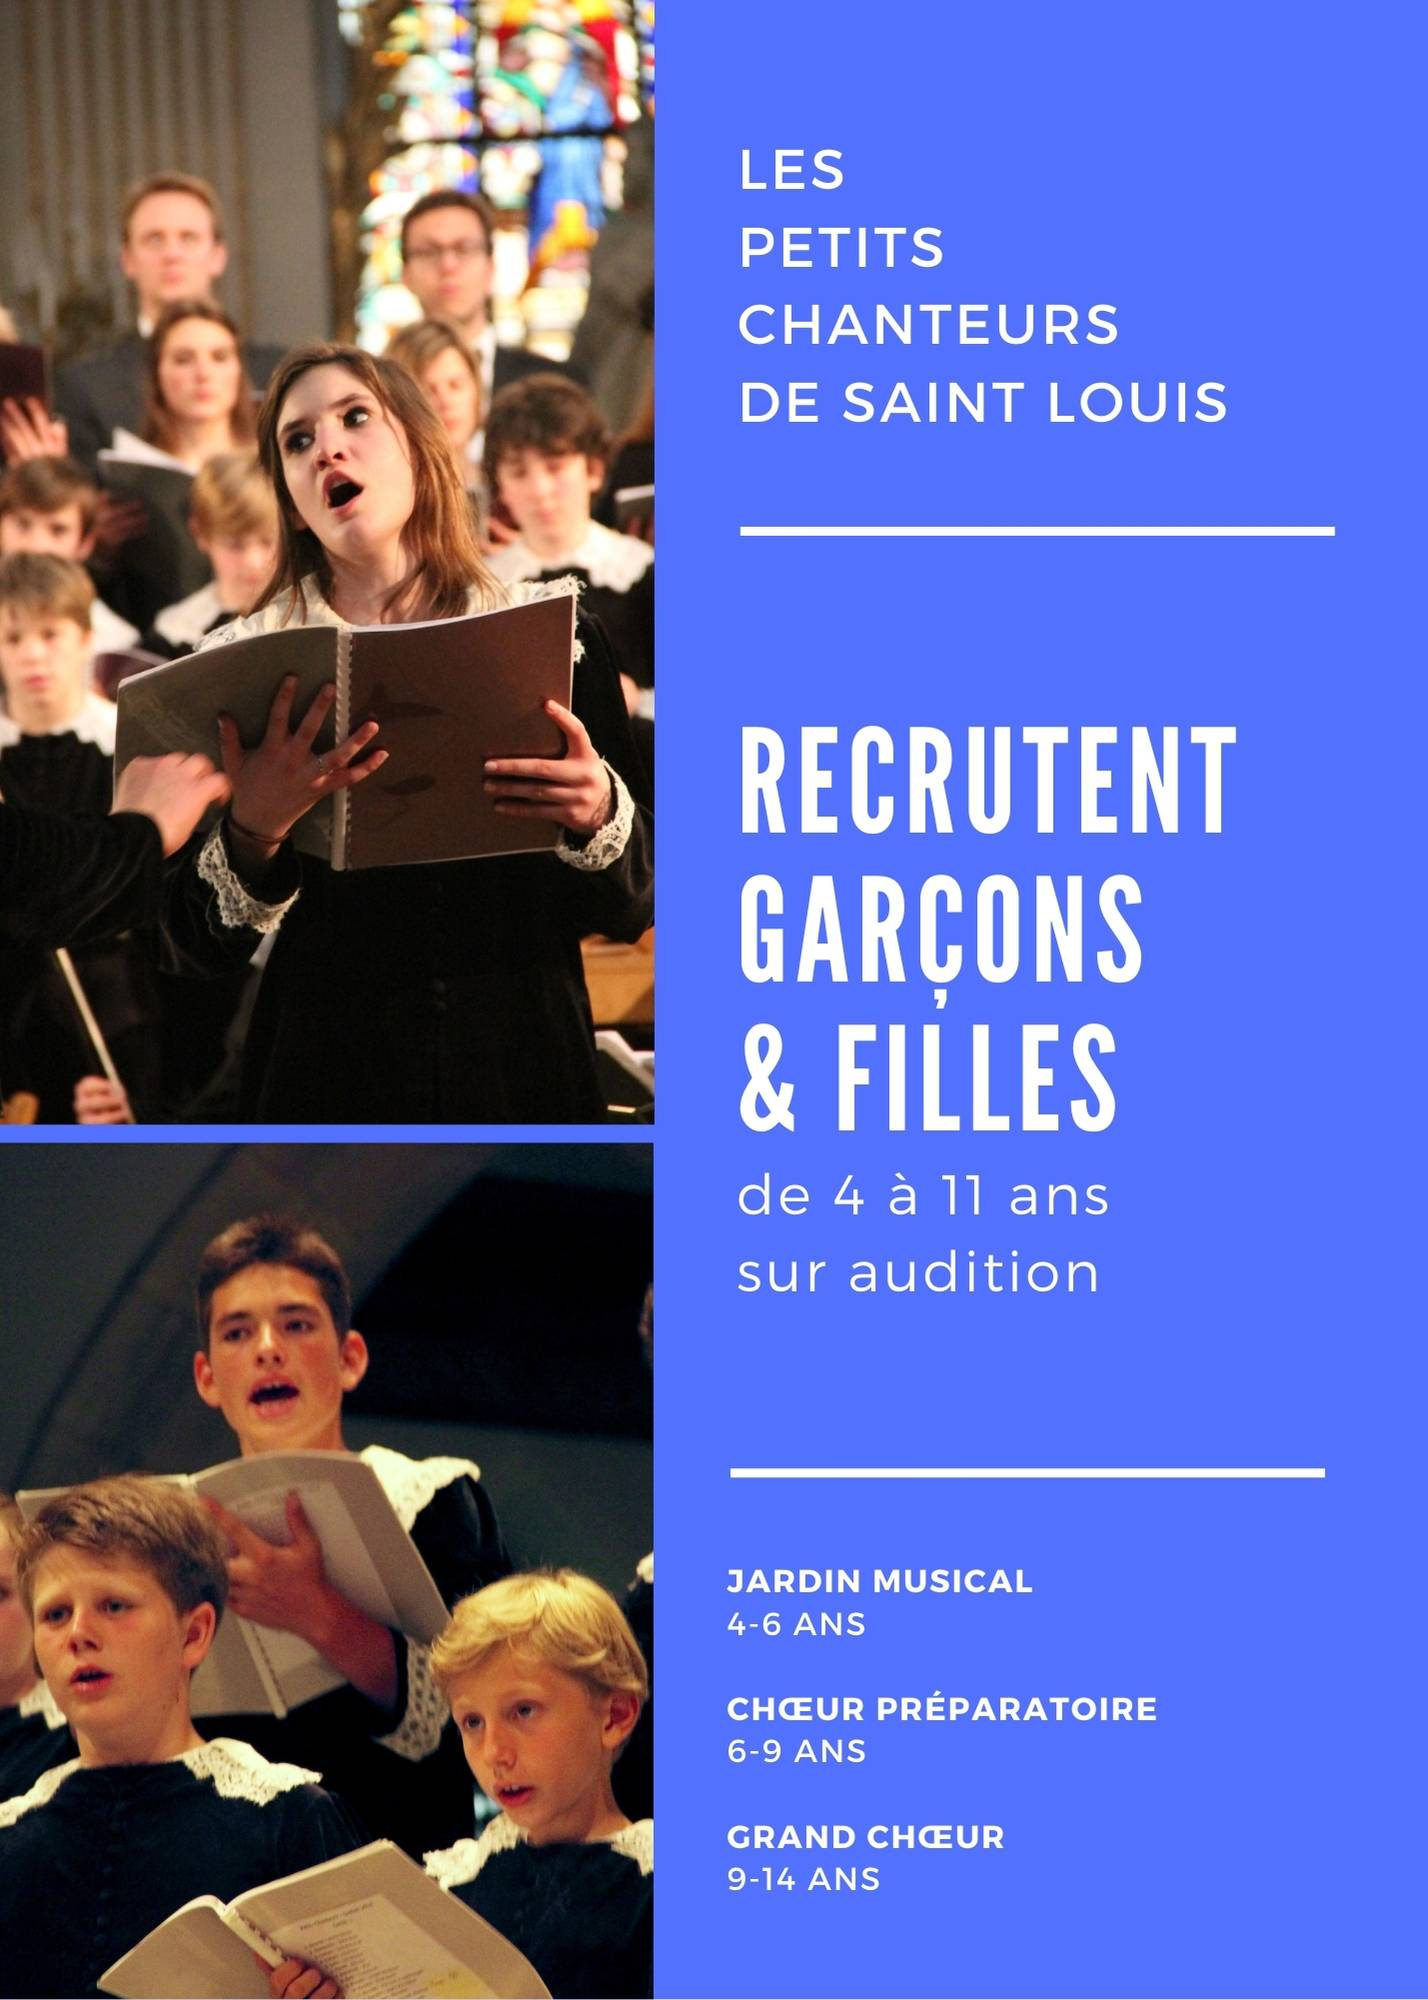 Recrutement chorale enfants paris petit chanteur de saint louis chant audition